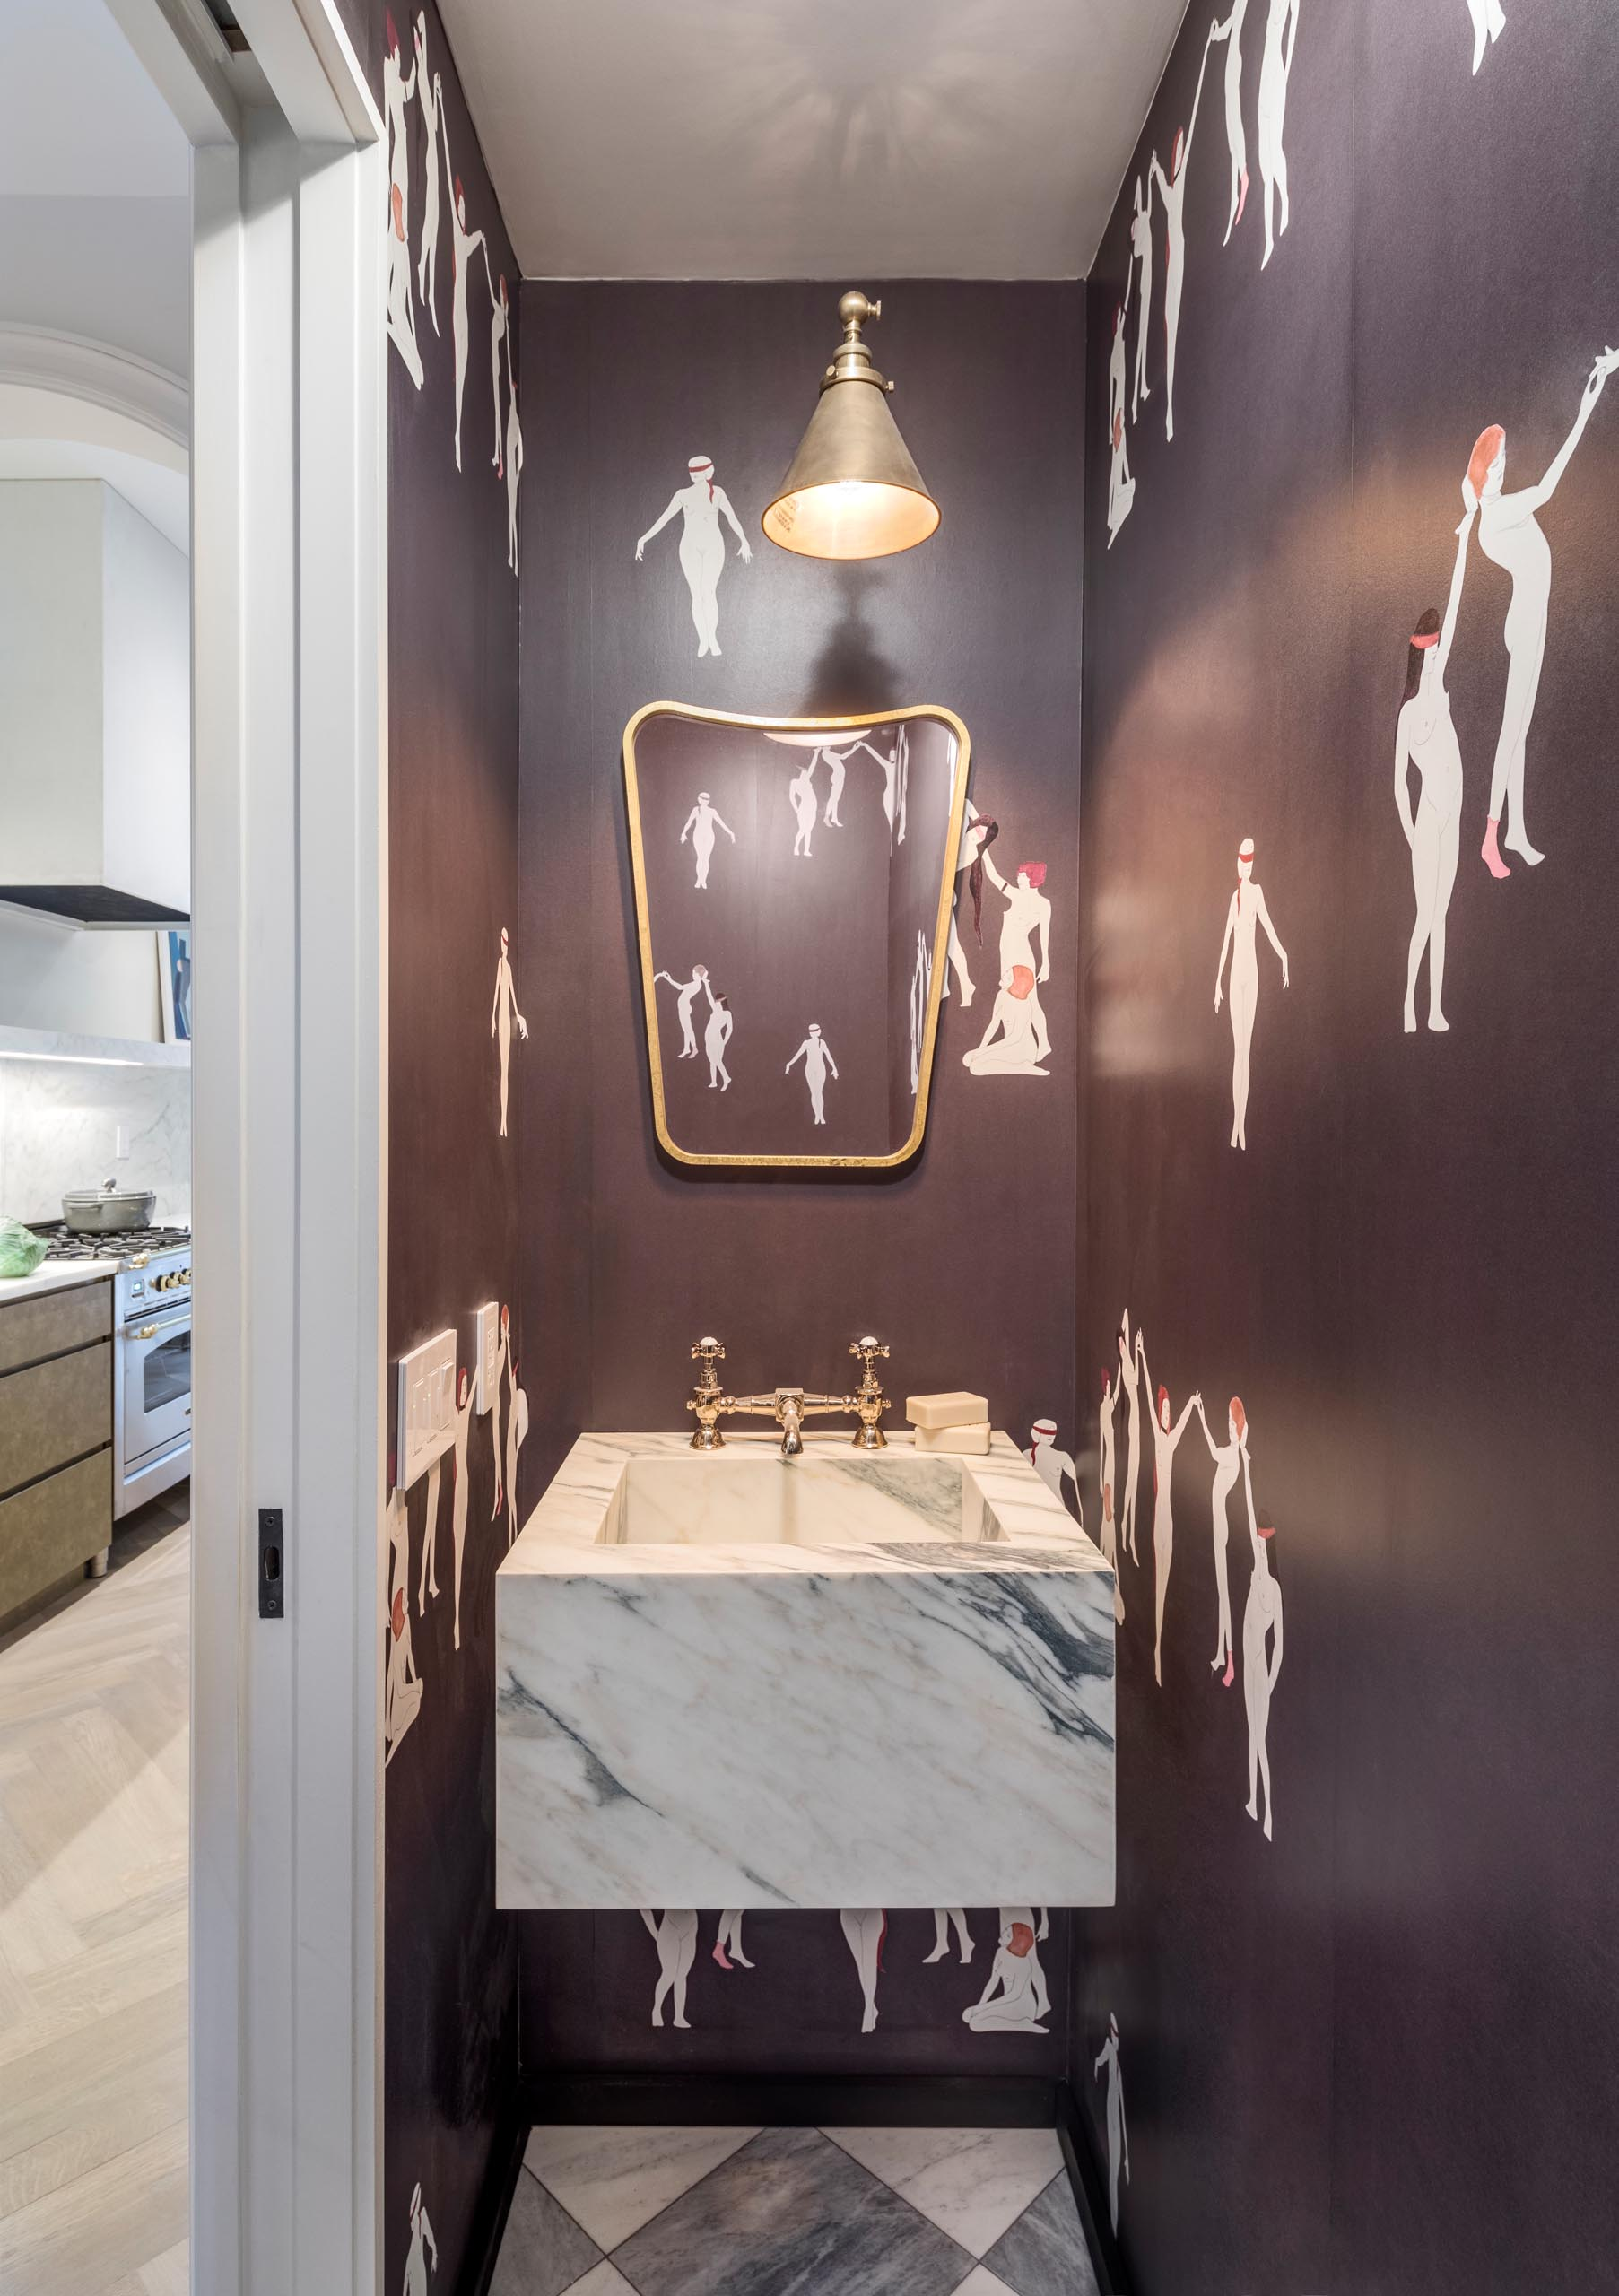 A powder room with gold accents, and black wallpaper that has pictures of women.